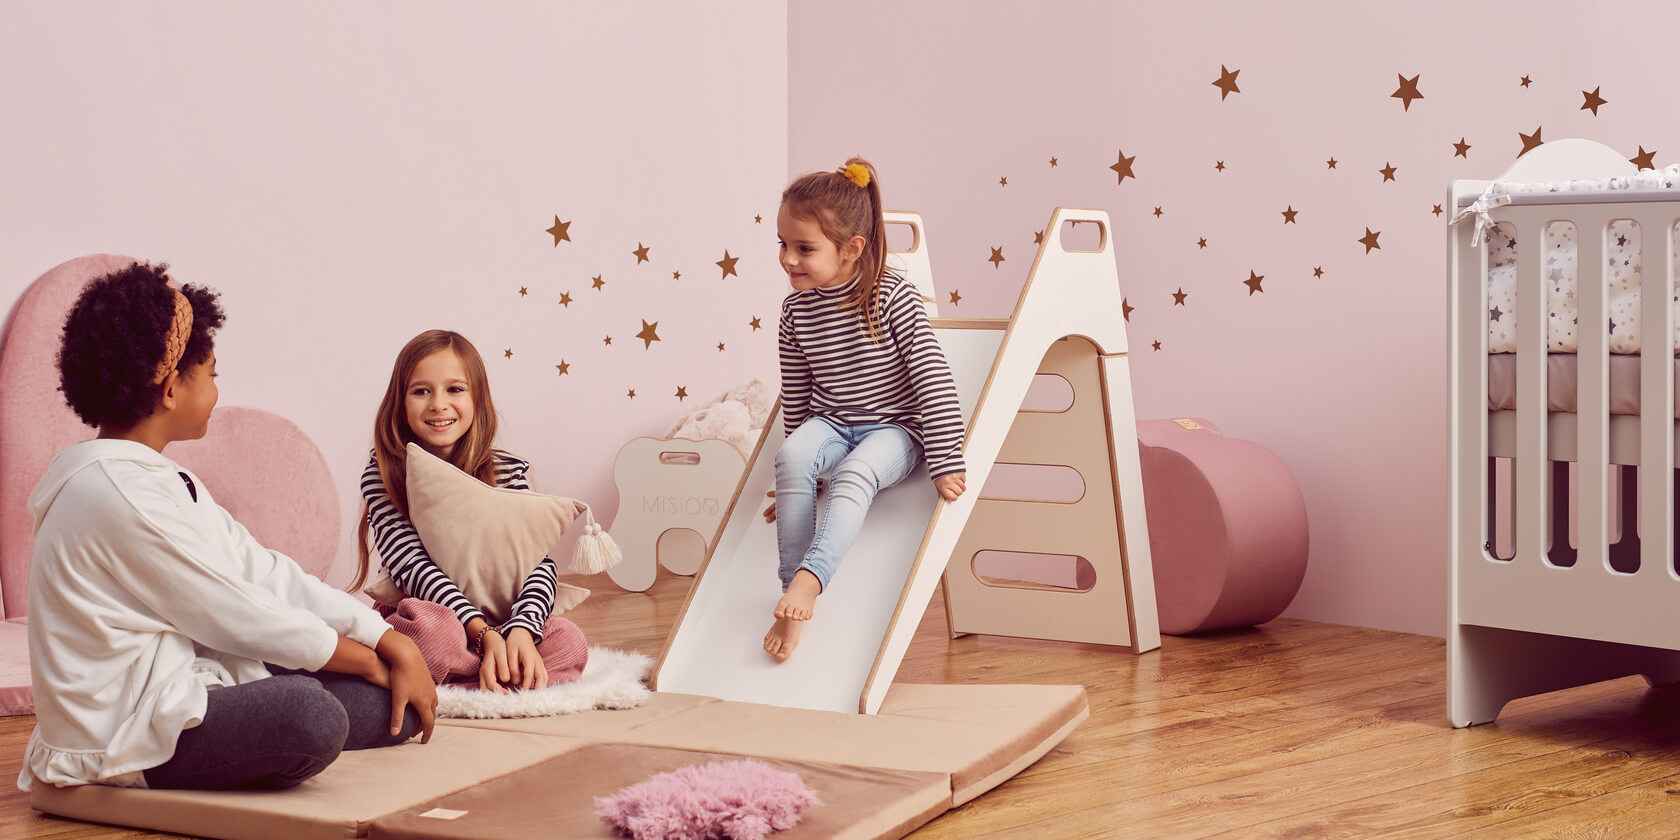 How to create a playground for children?